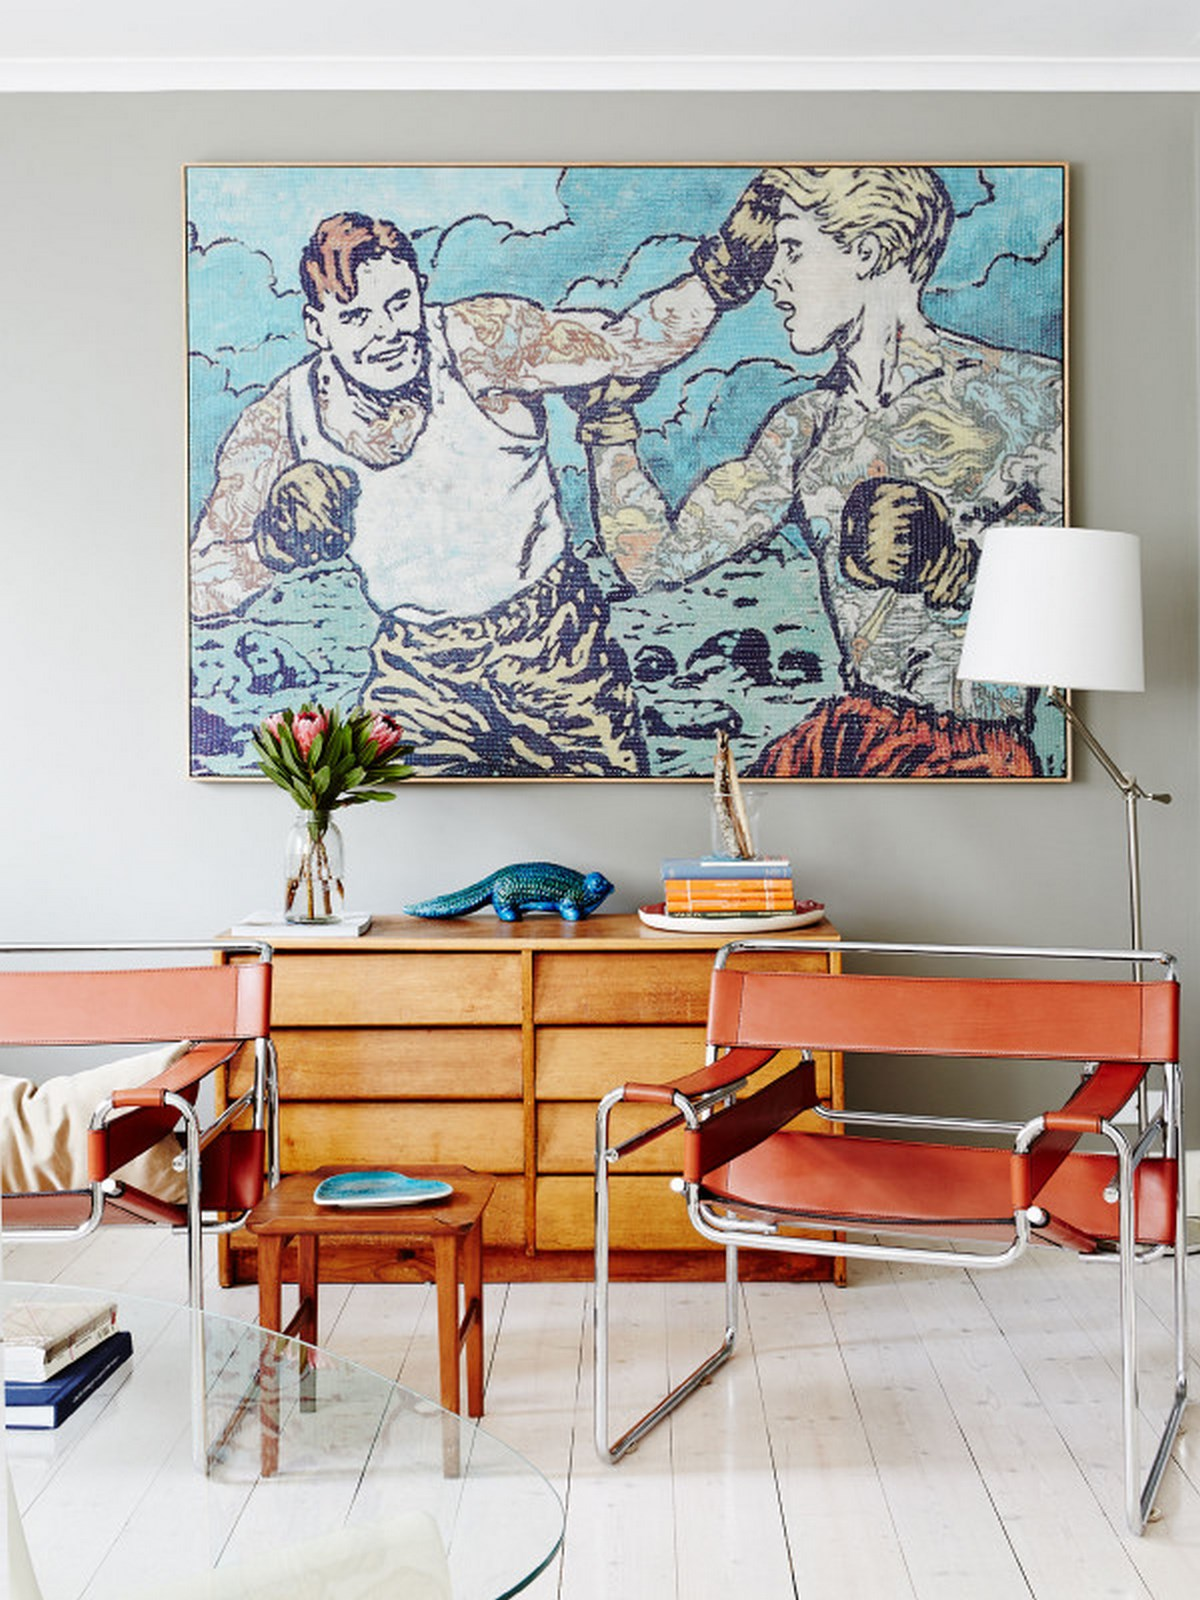 5-loft-room-design-with-single-thin-chair-iwth-sideboard-and-big-painted-wall-and-corner-standing-light-lamp